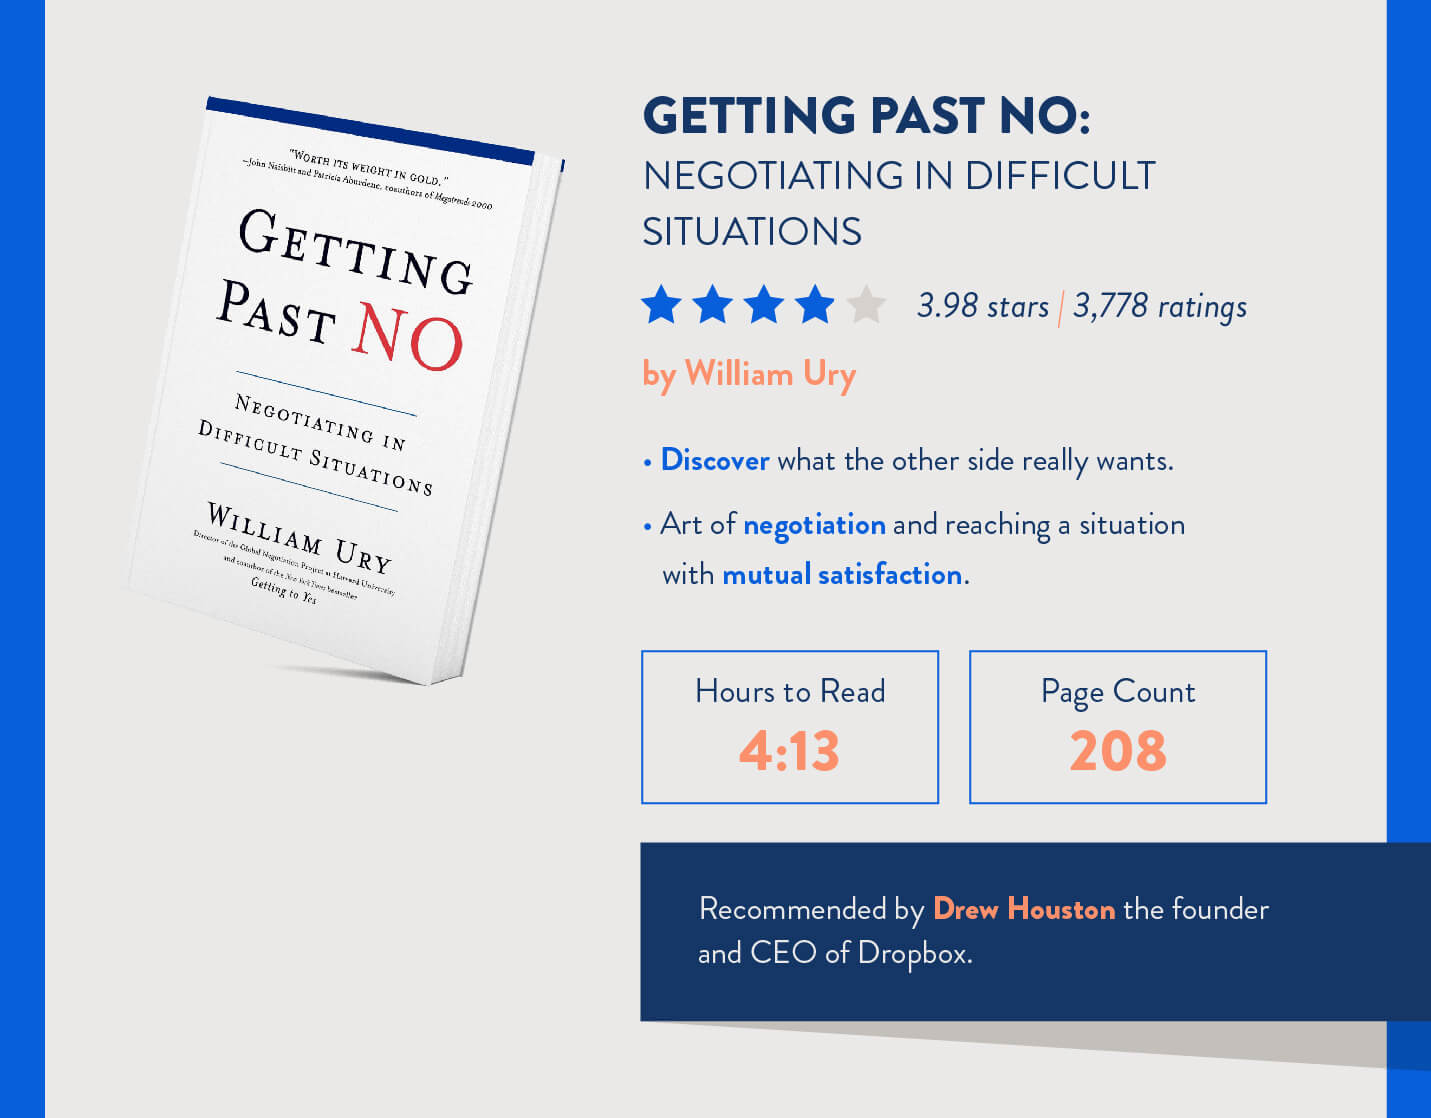 books for mobile marketers getting past no by William Ury hours to read and page count